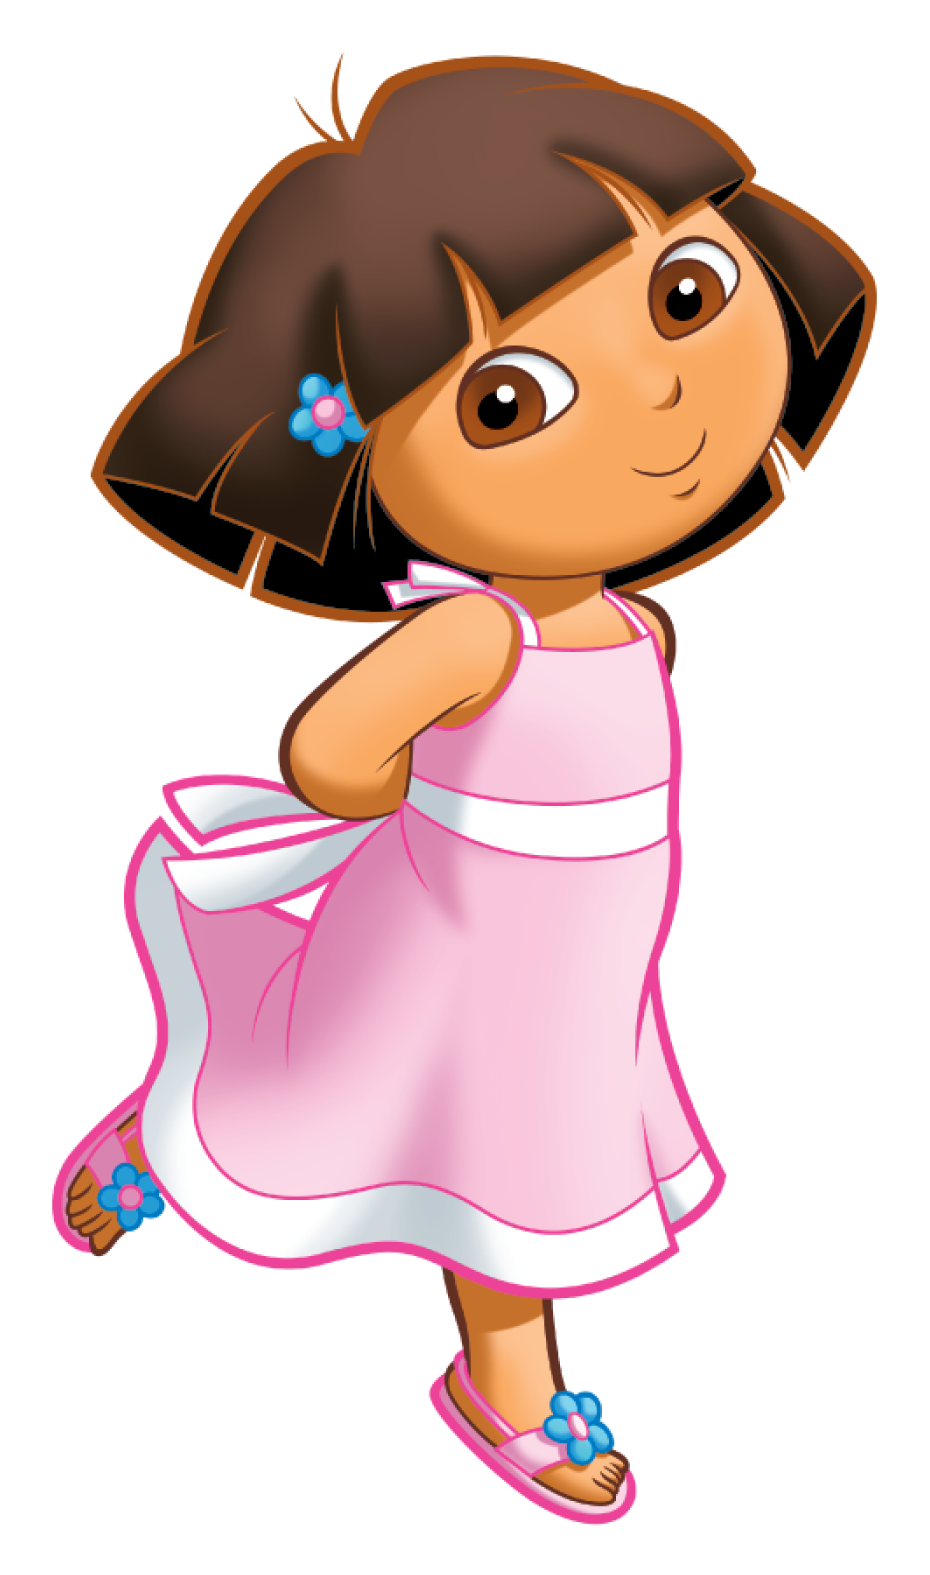 Latest 930 1575 Dora Wallpaper Dora Cartoon Friend Cartoon